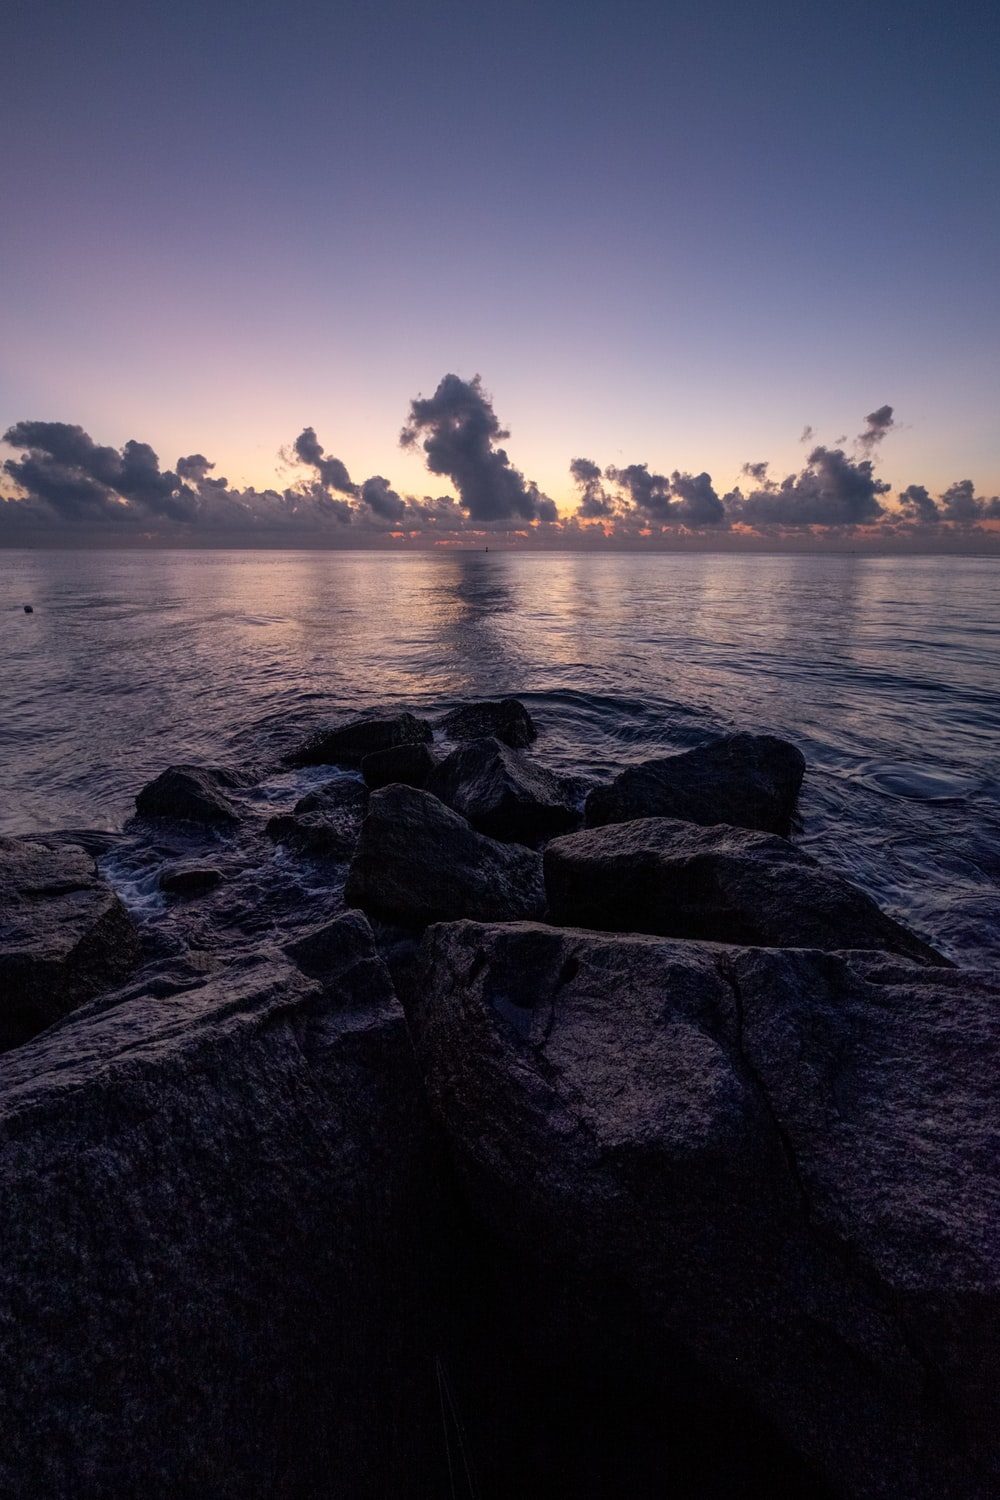 gray rocks near body of water during sunset